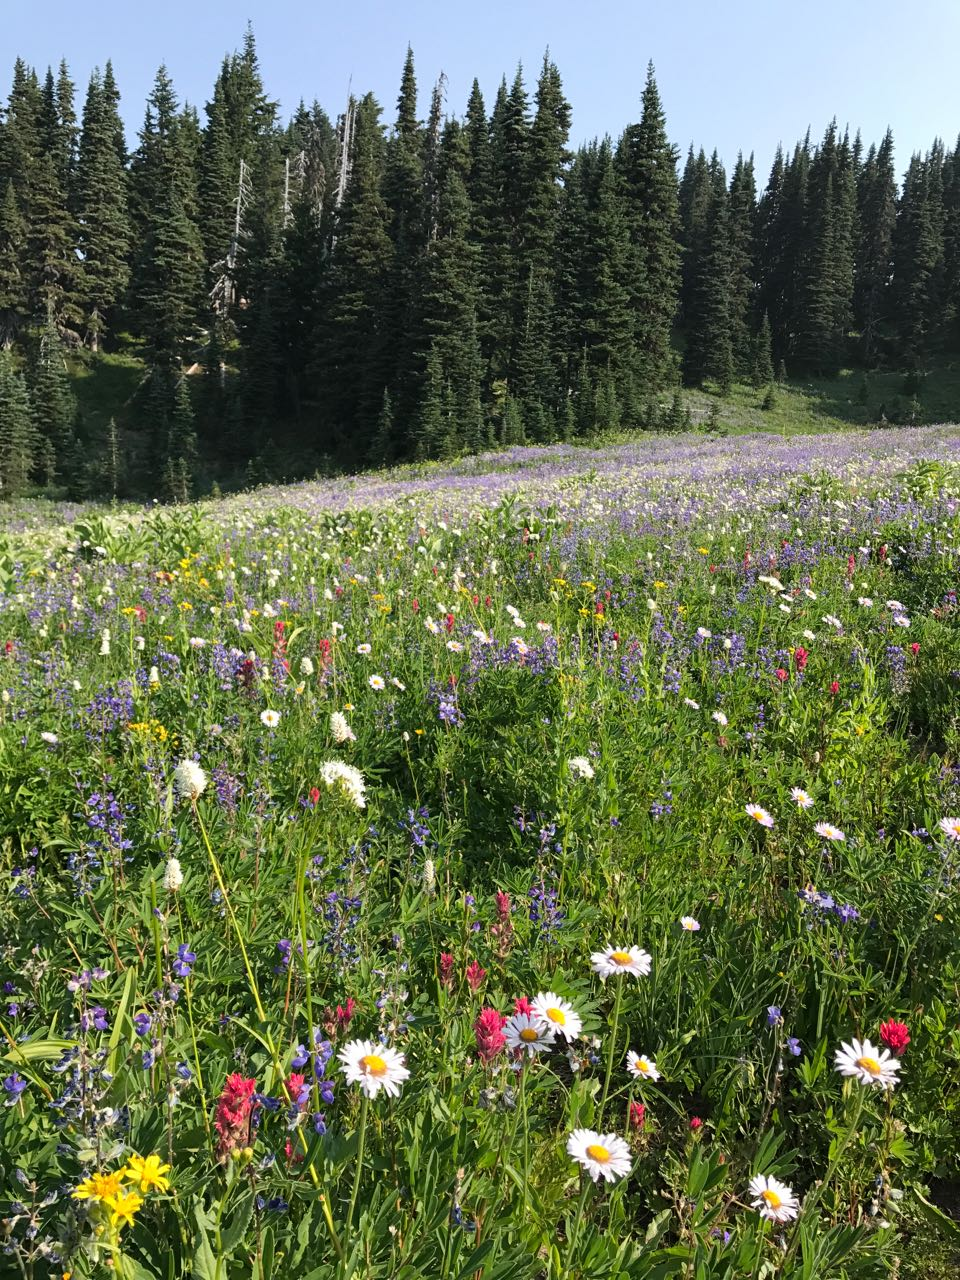 Mt. Rainier flower field